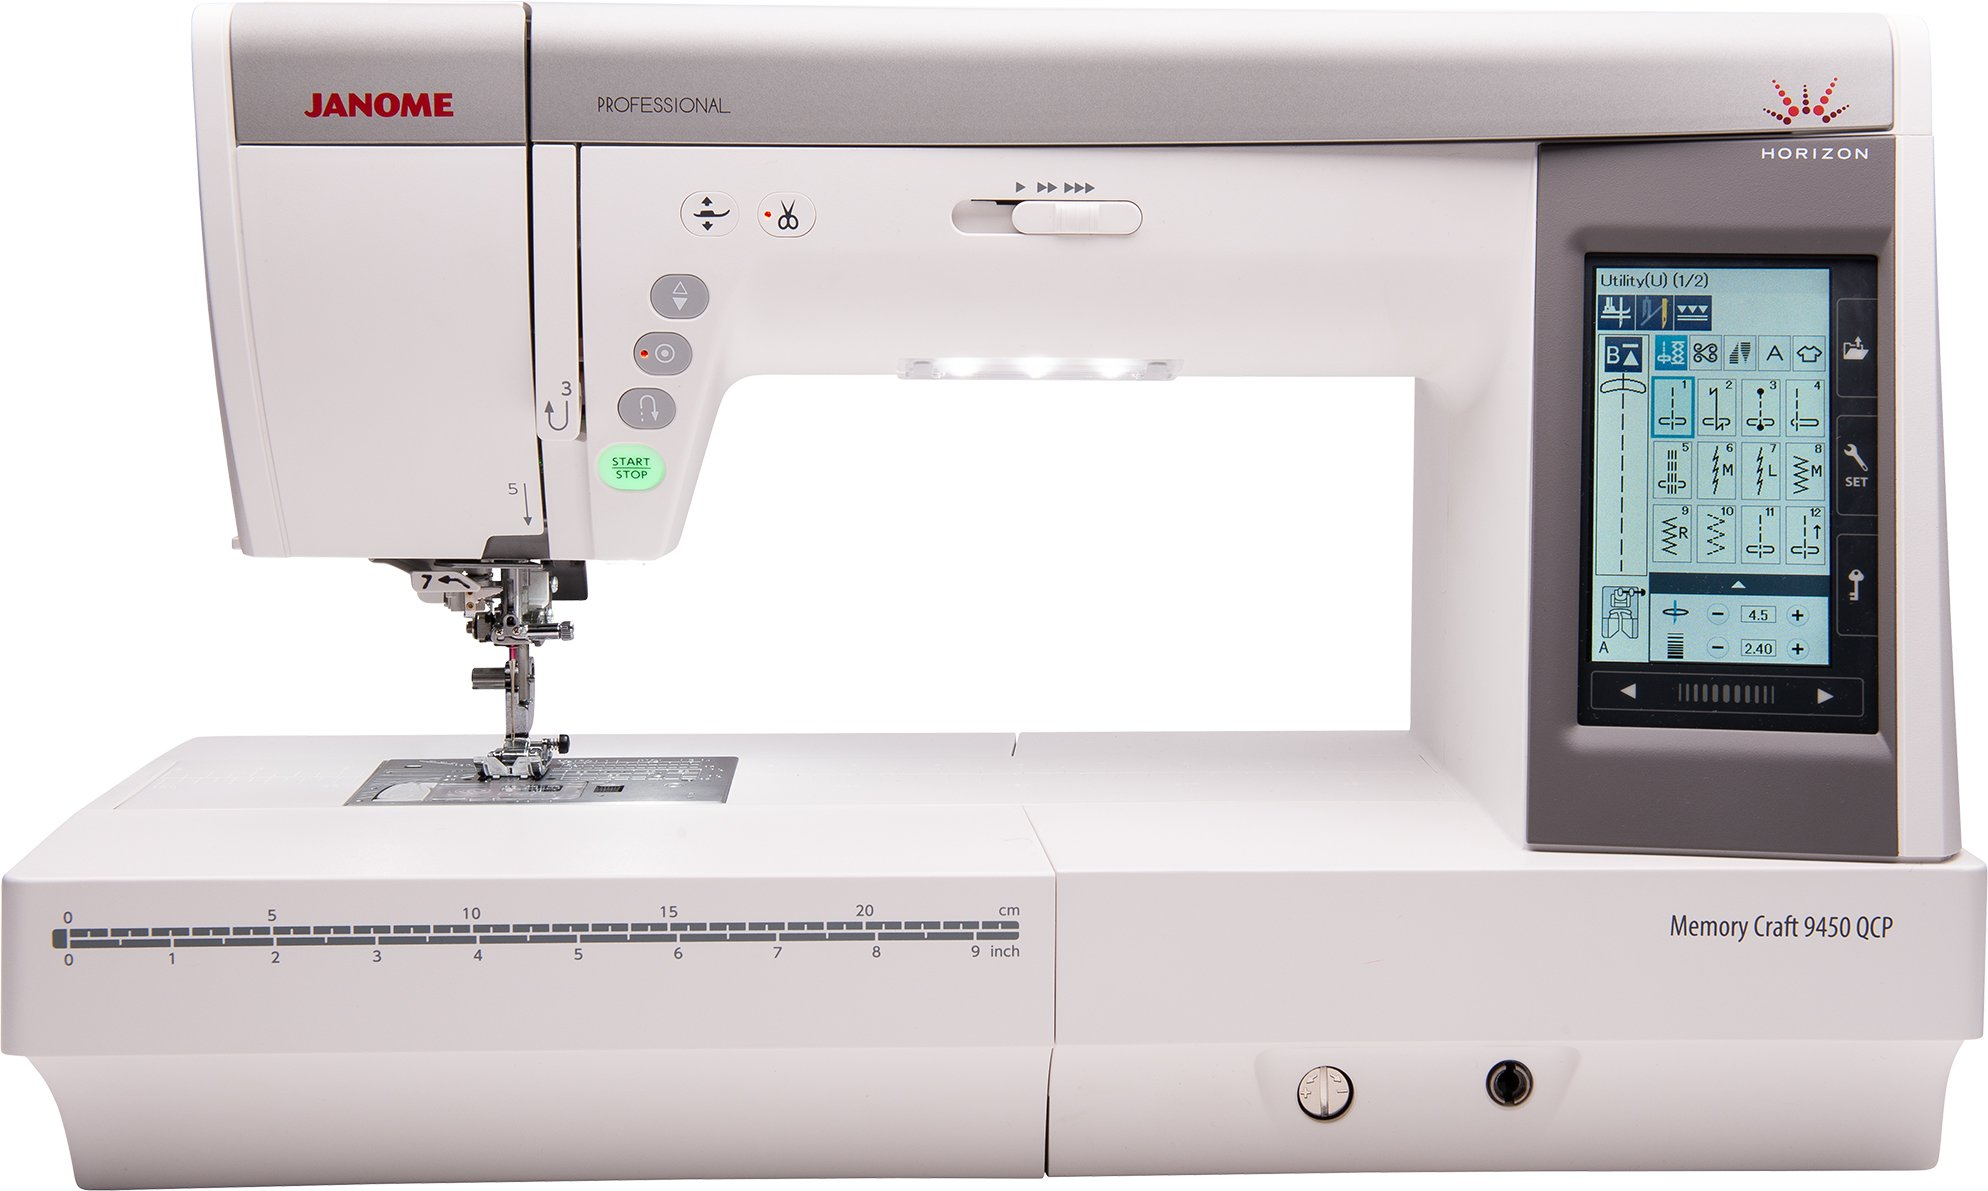 Janome Horizon Memory Craft 9450QCP